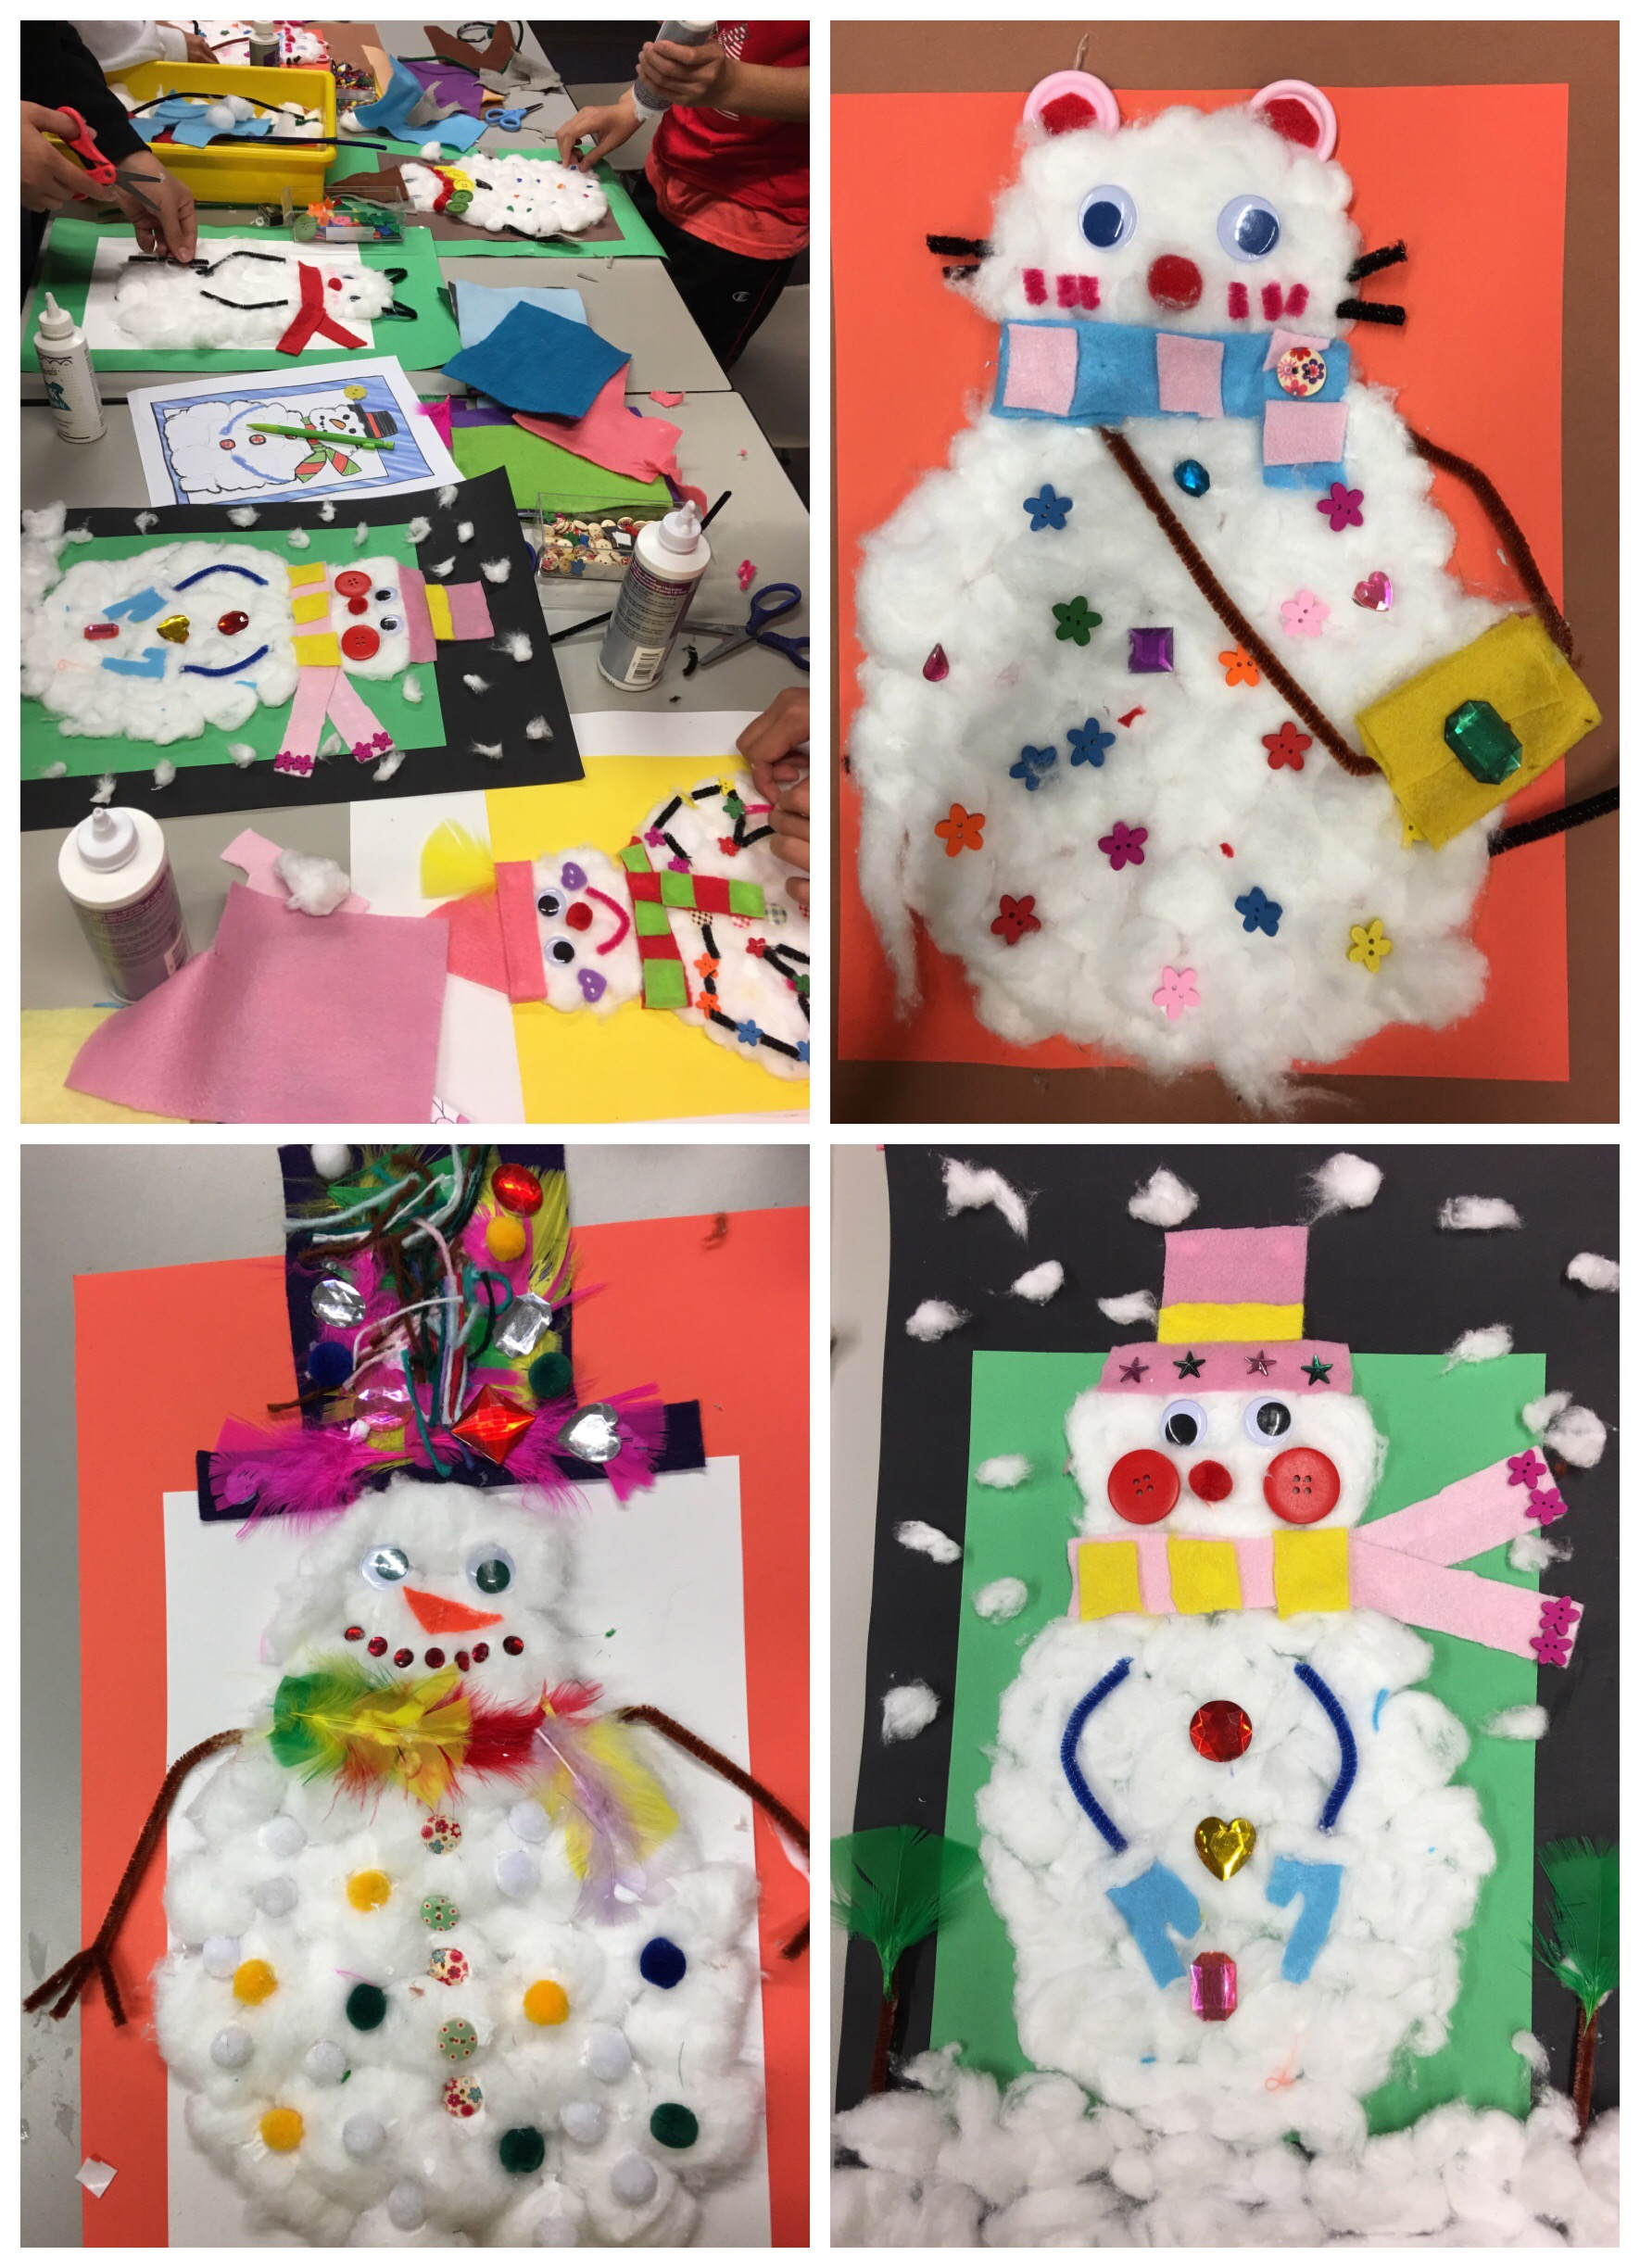 More Splendid Snowmen from Art With Elizabeth last week!